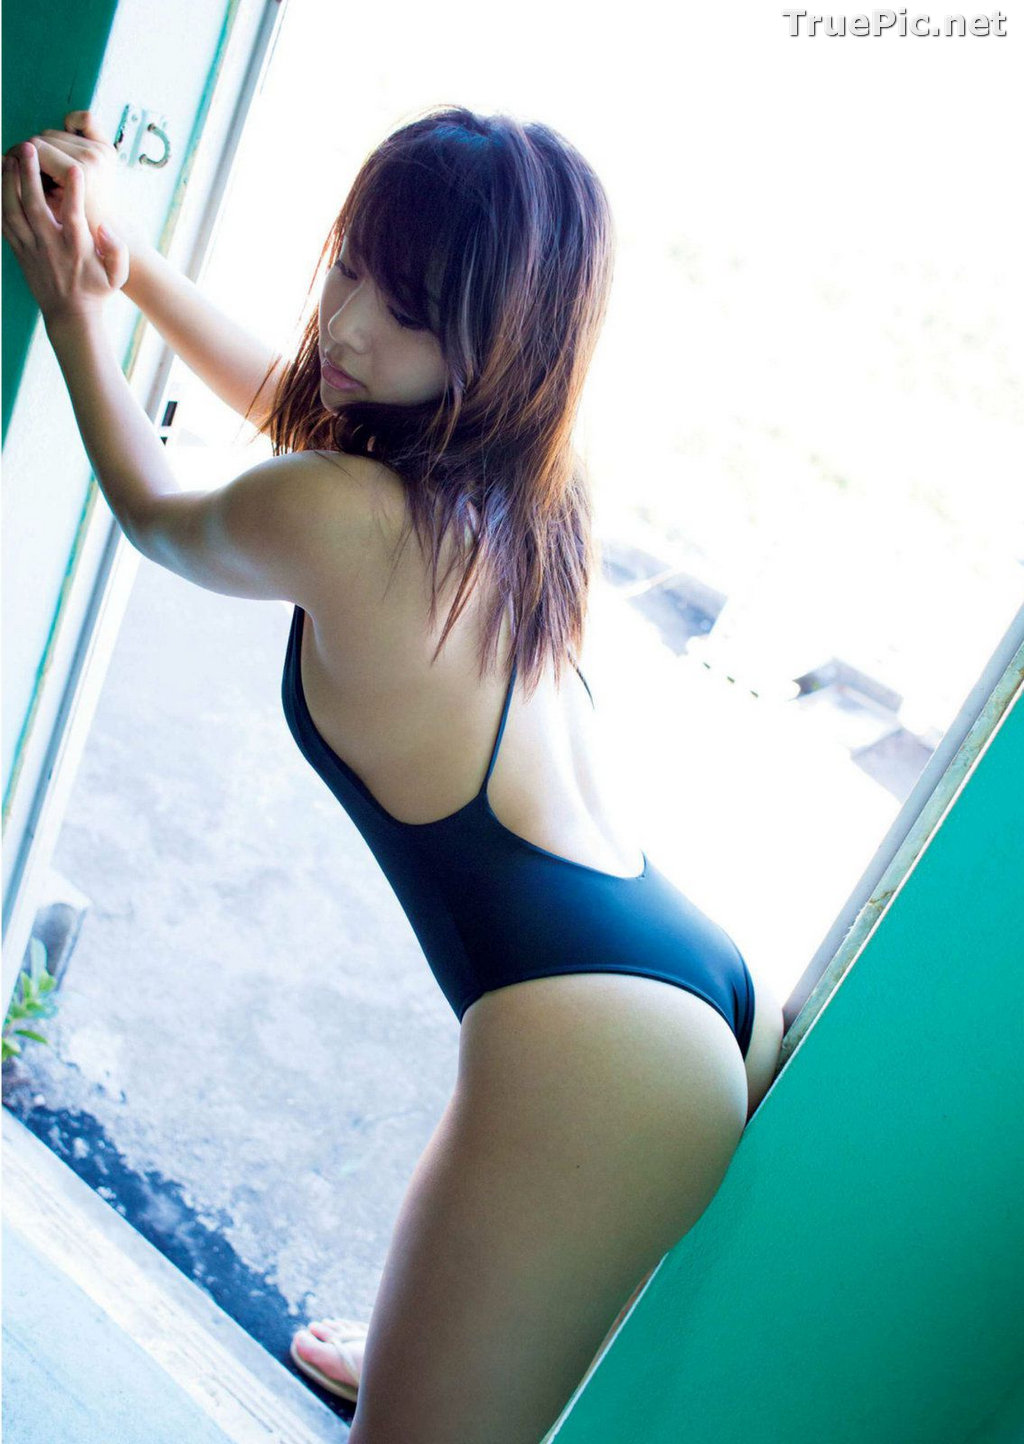 Image Japanese Actress And Model – Natsumi Hirajima (平嶋夏海) - Sexy Picture Collection 2021 - TruePic.net - Picture-9